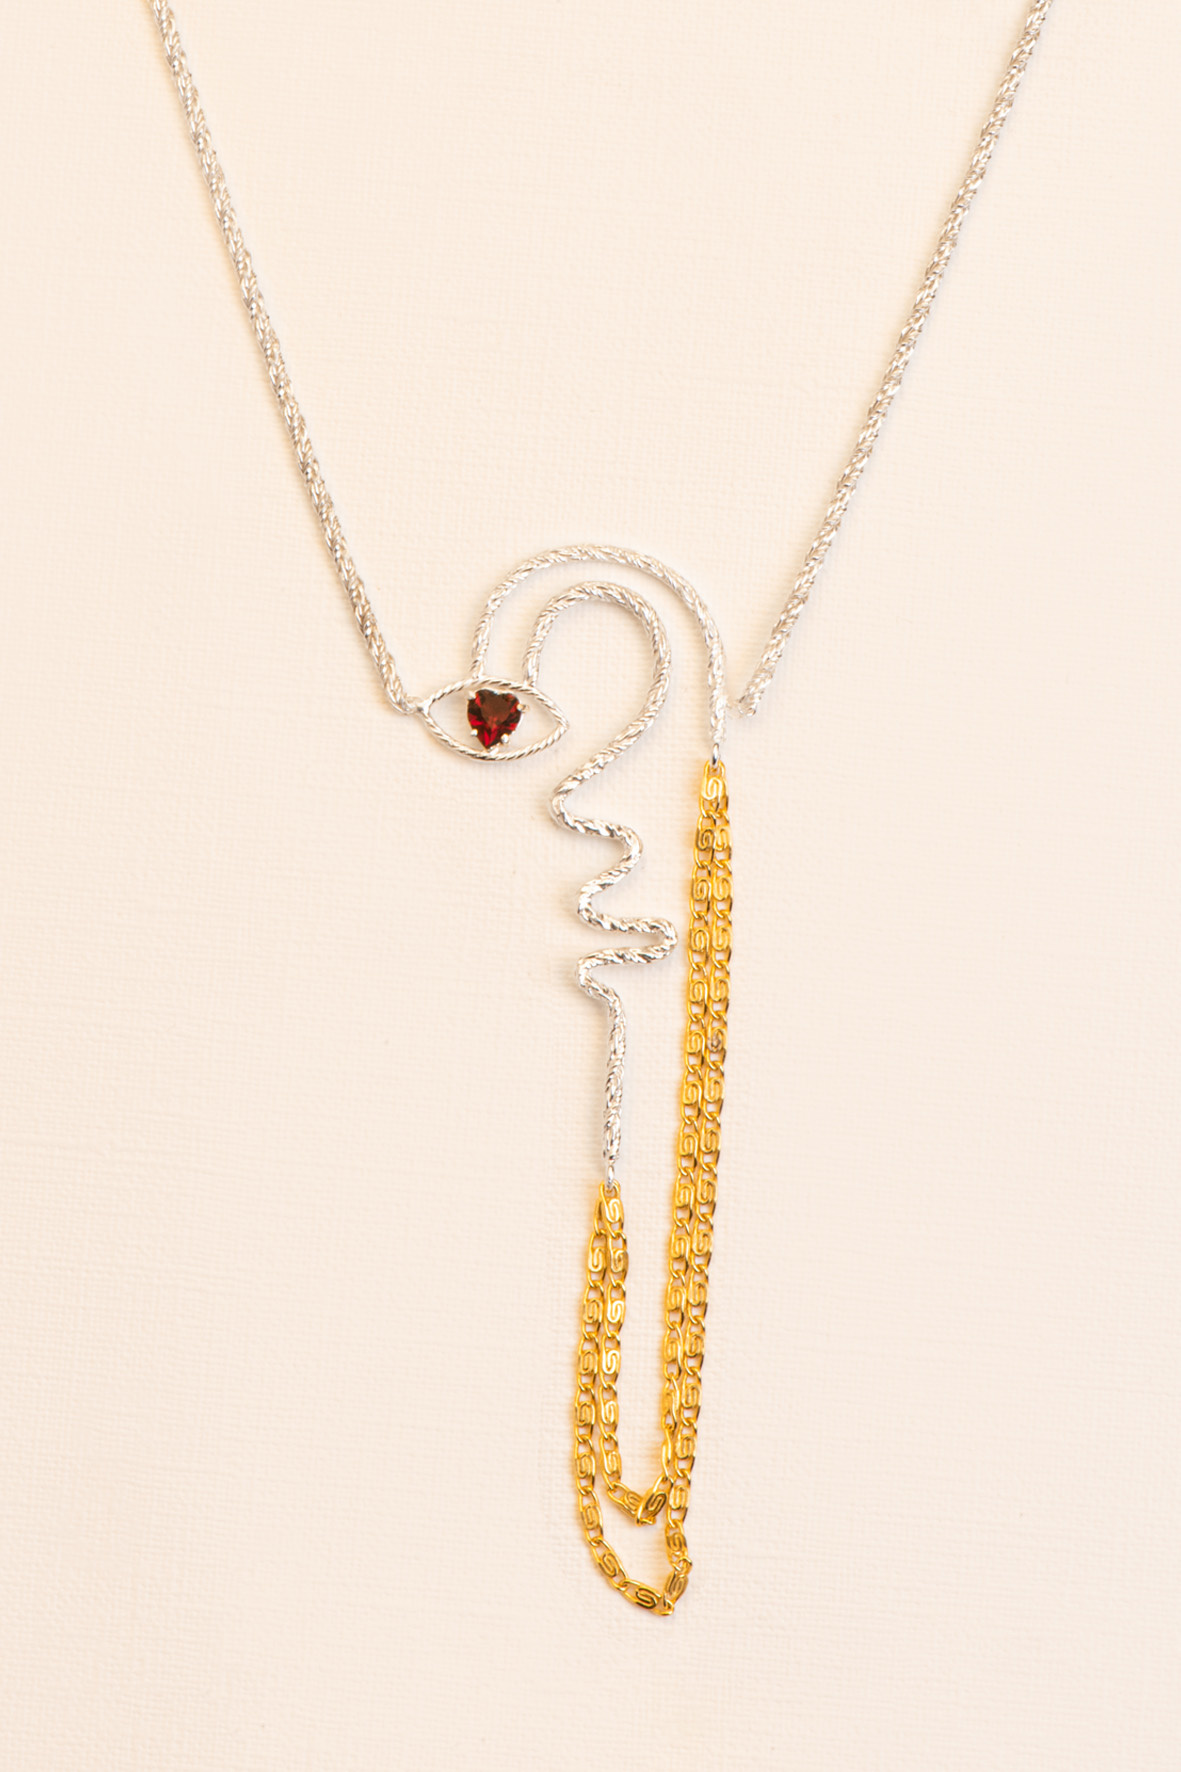 Statement necklace with garnet detail